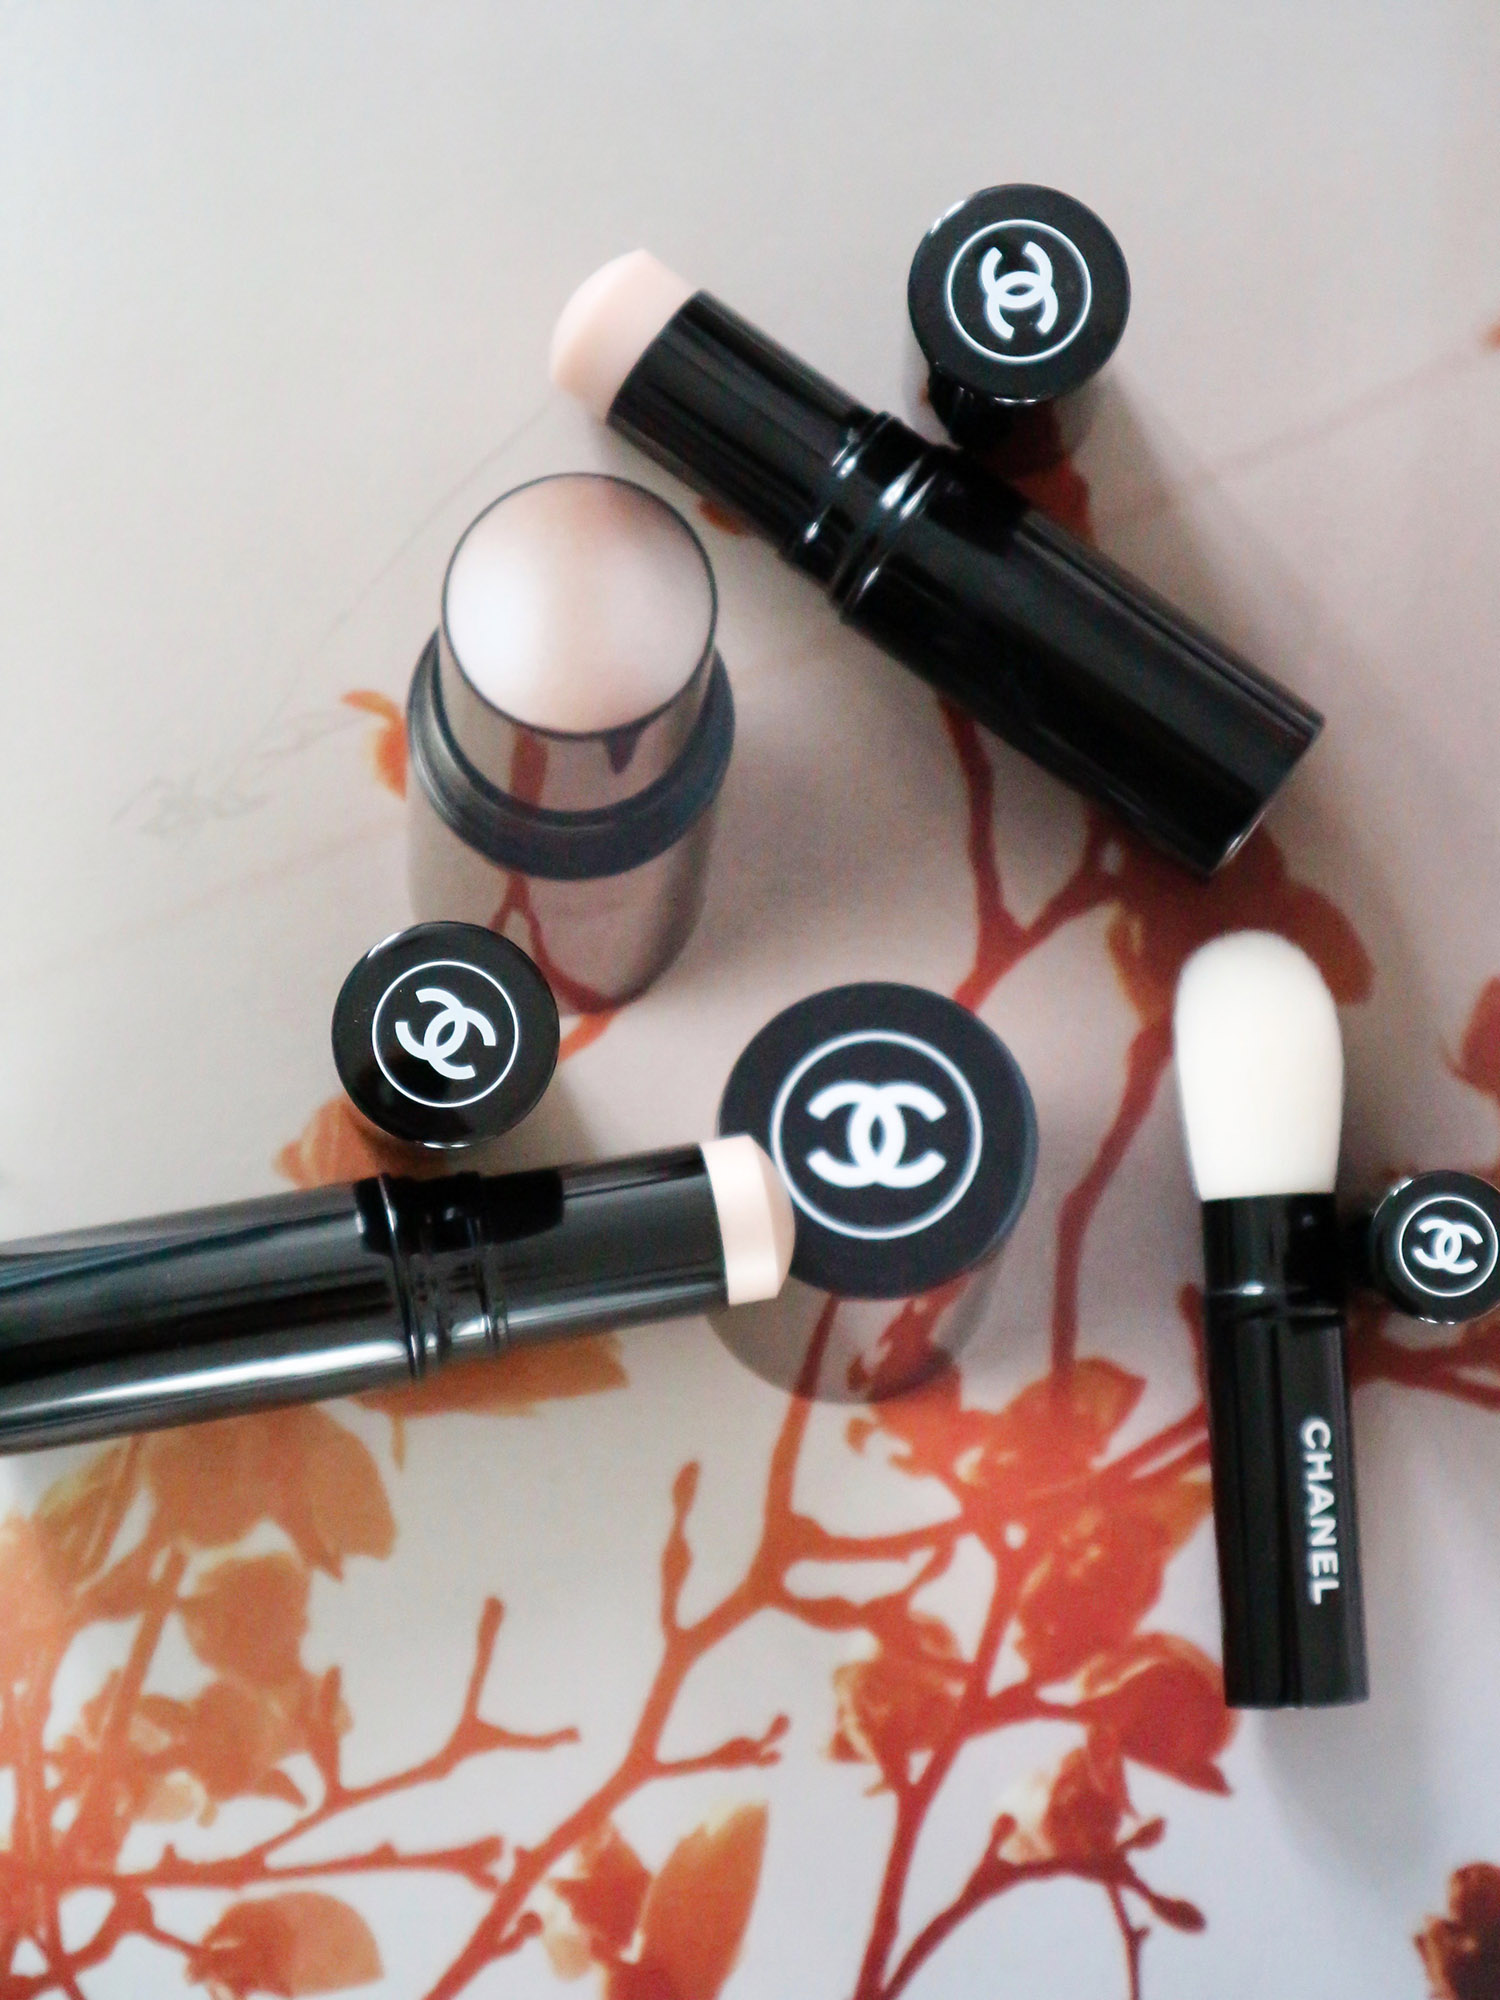 Chanel, make-up trends, spring summer, spring summer trends, trends, new collection